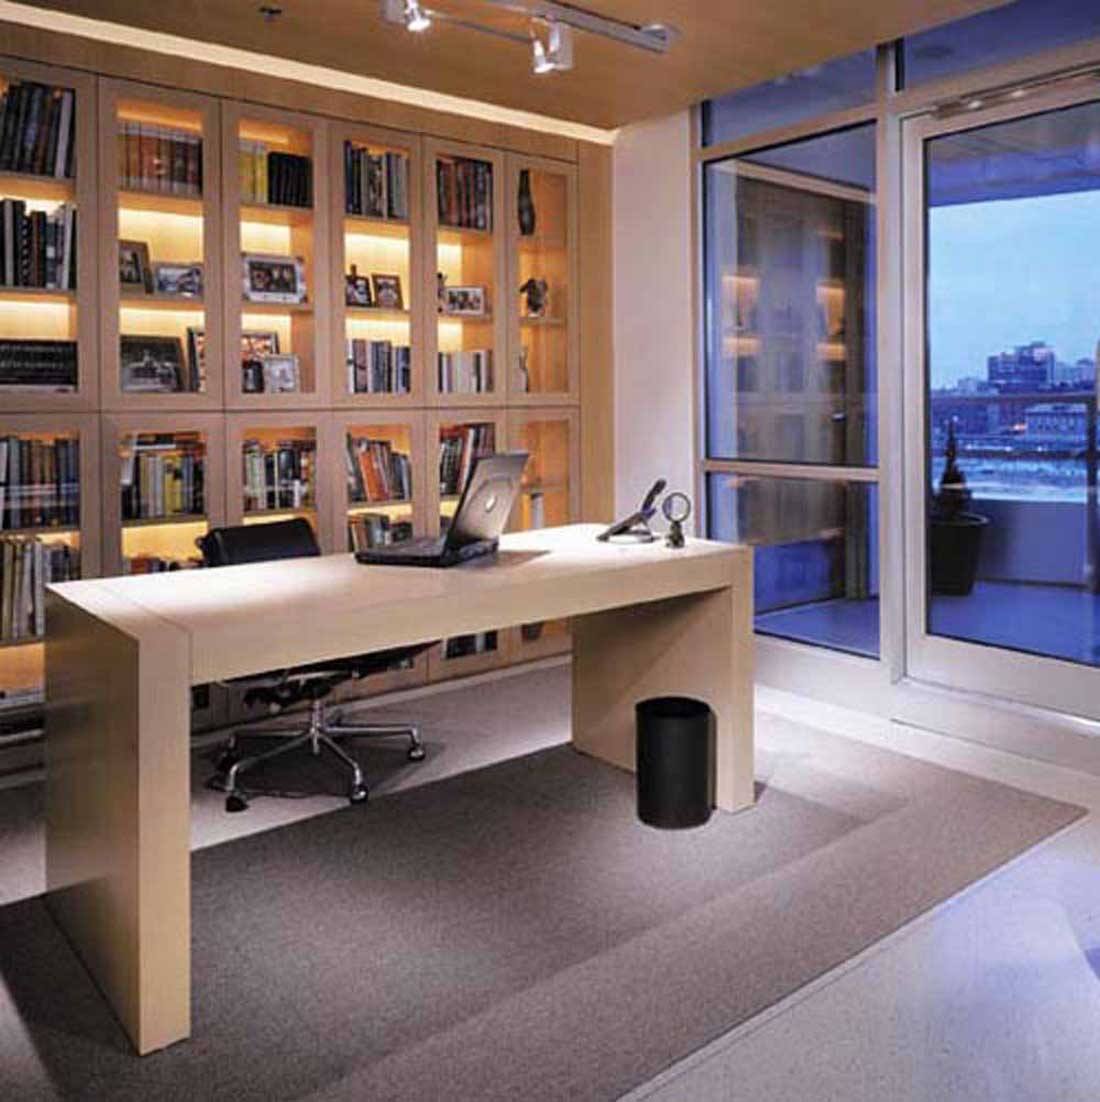 Small Home Office Ideas For Men And Women: Home Office Design Ideas For Big Or Small Spaces